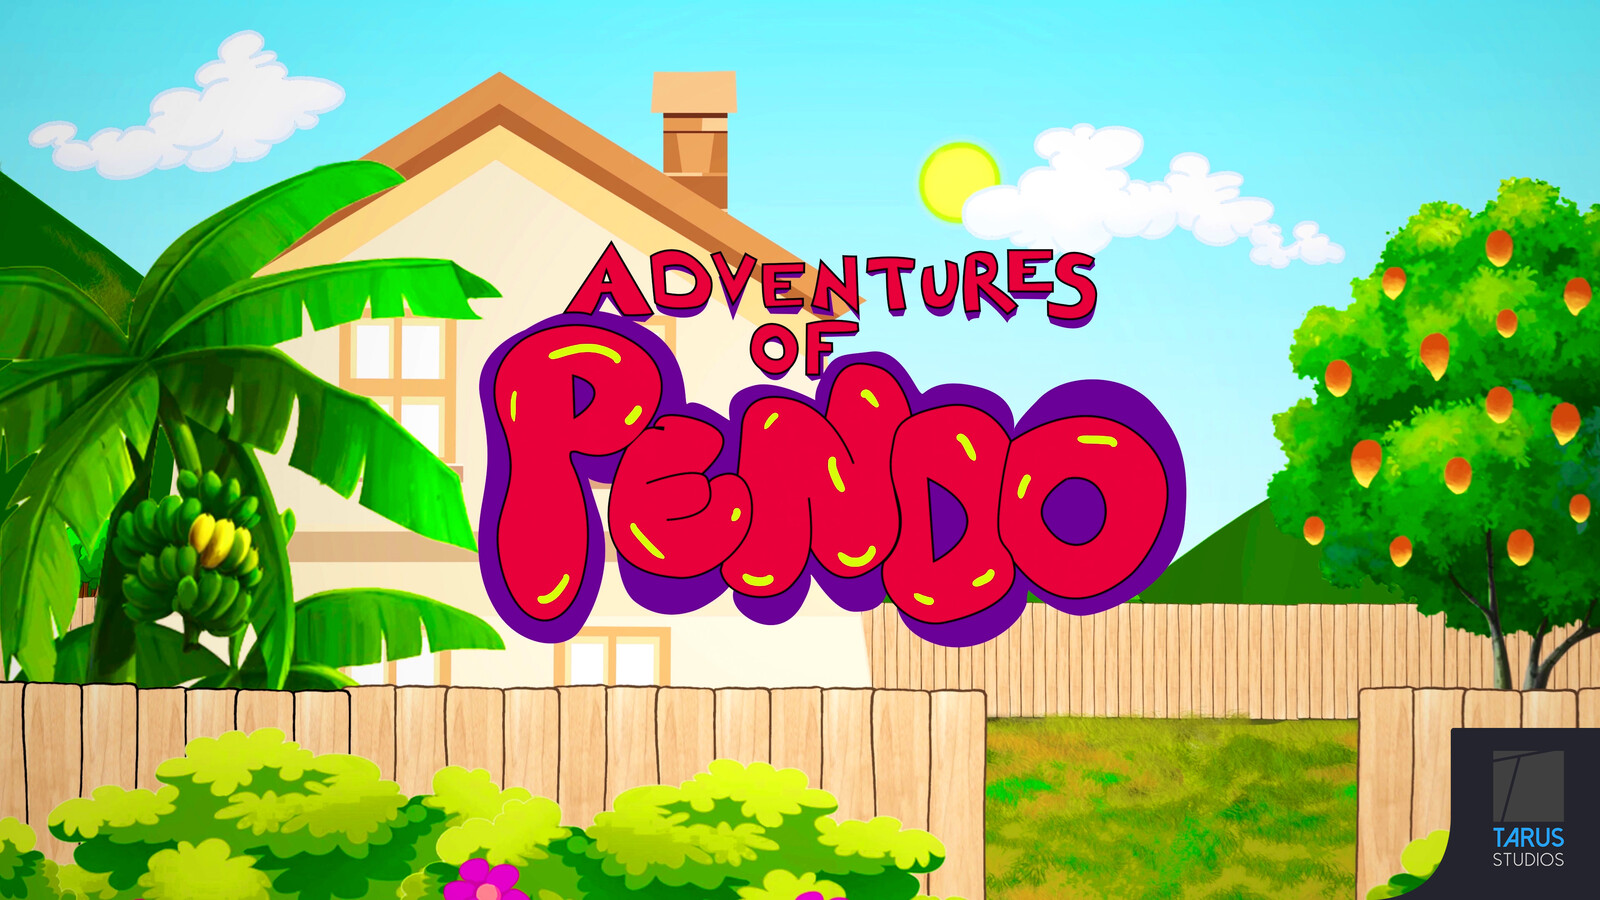 ADVENTURES OF PENDO: KIDS ANIMATION